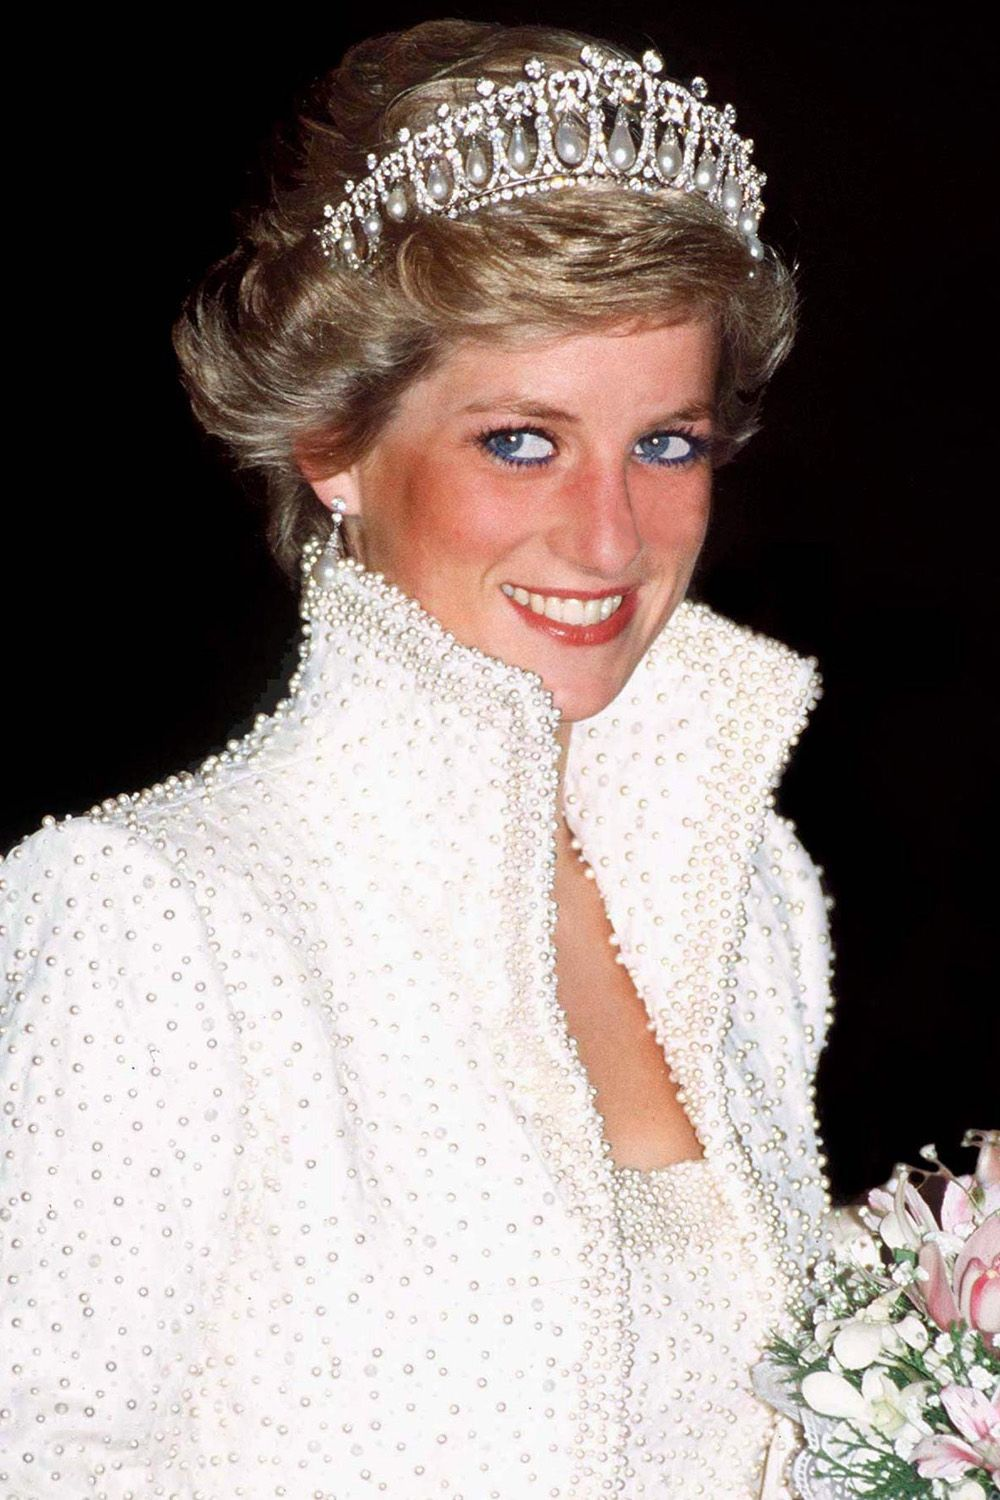 Princess Diana Hairstyles and Cut - Princess Diana Hair